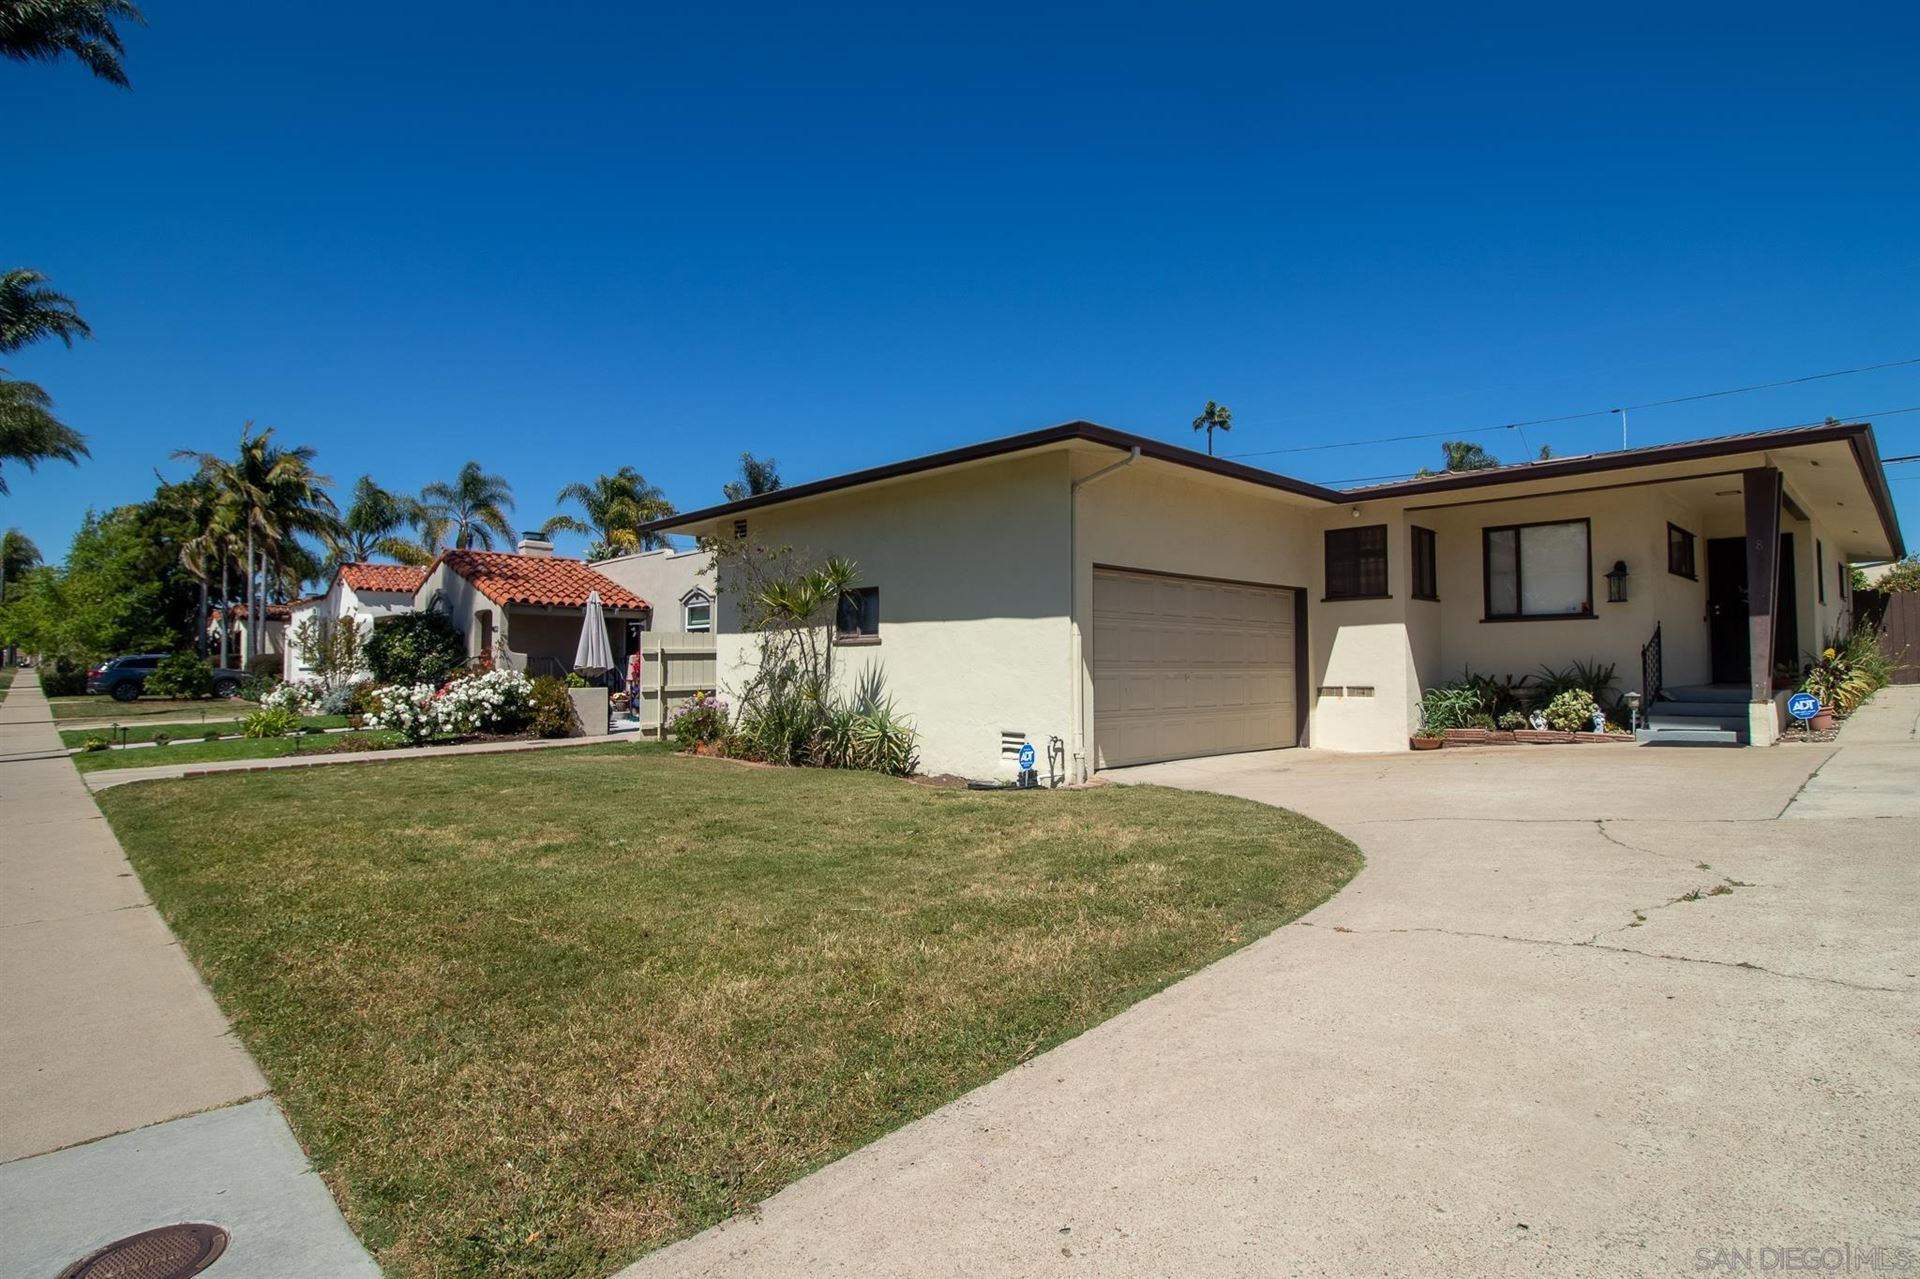 Photo for 4825 Kensington Dr., San Diego, CA 92116 (MLS # 210011425)